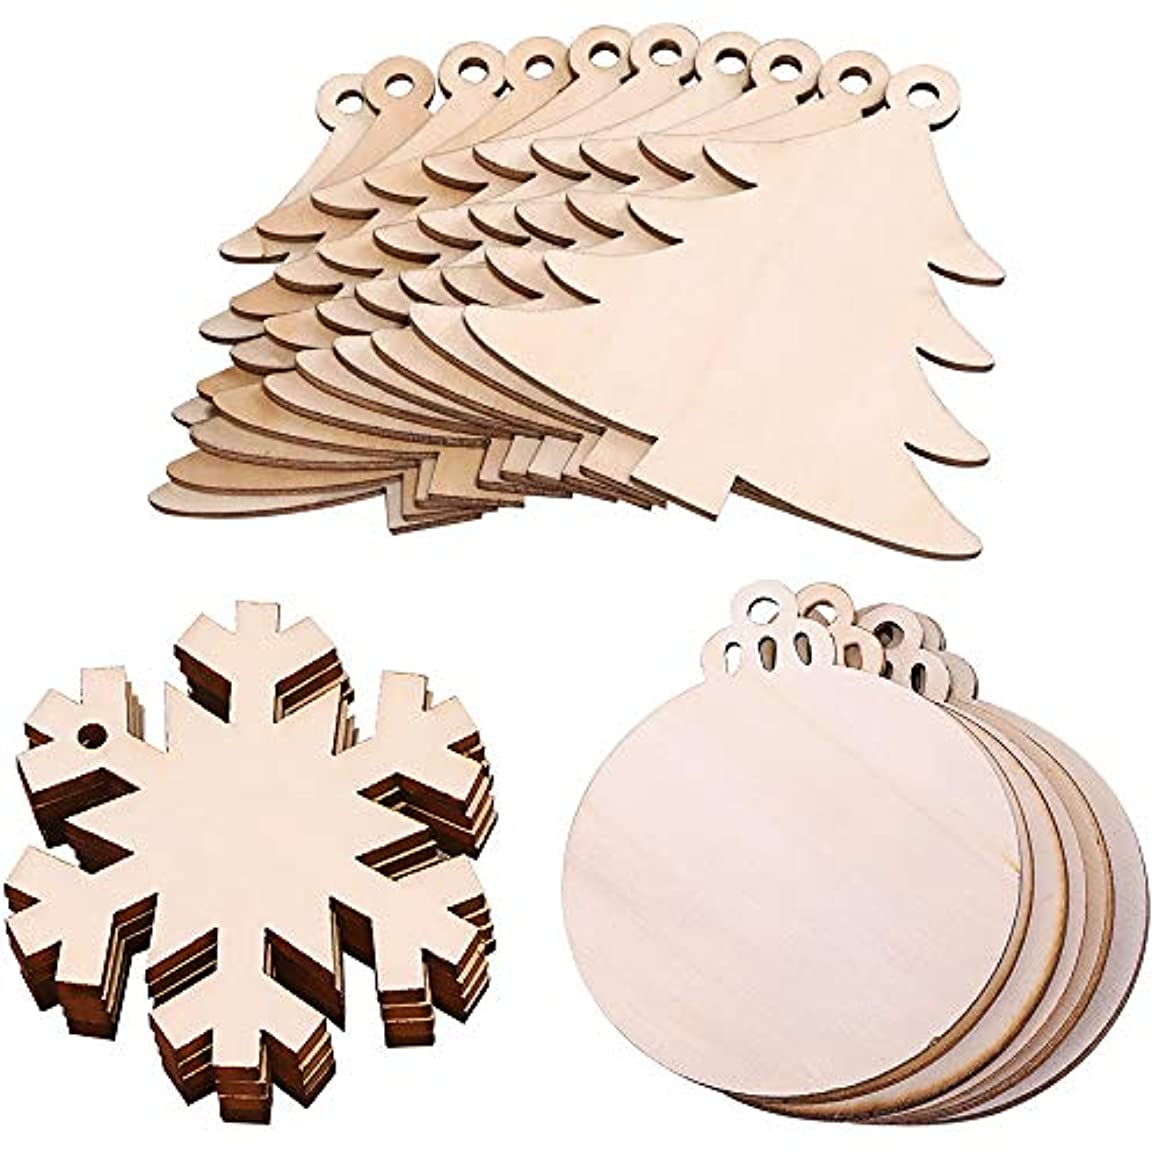 MediaLJia Wooden Hanging Ornaments Christmas Tree Snowflake Snowman Shaped Embellishments for Christmas Decoration (Mixed 30 PCs)